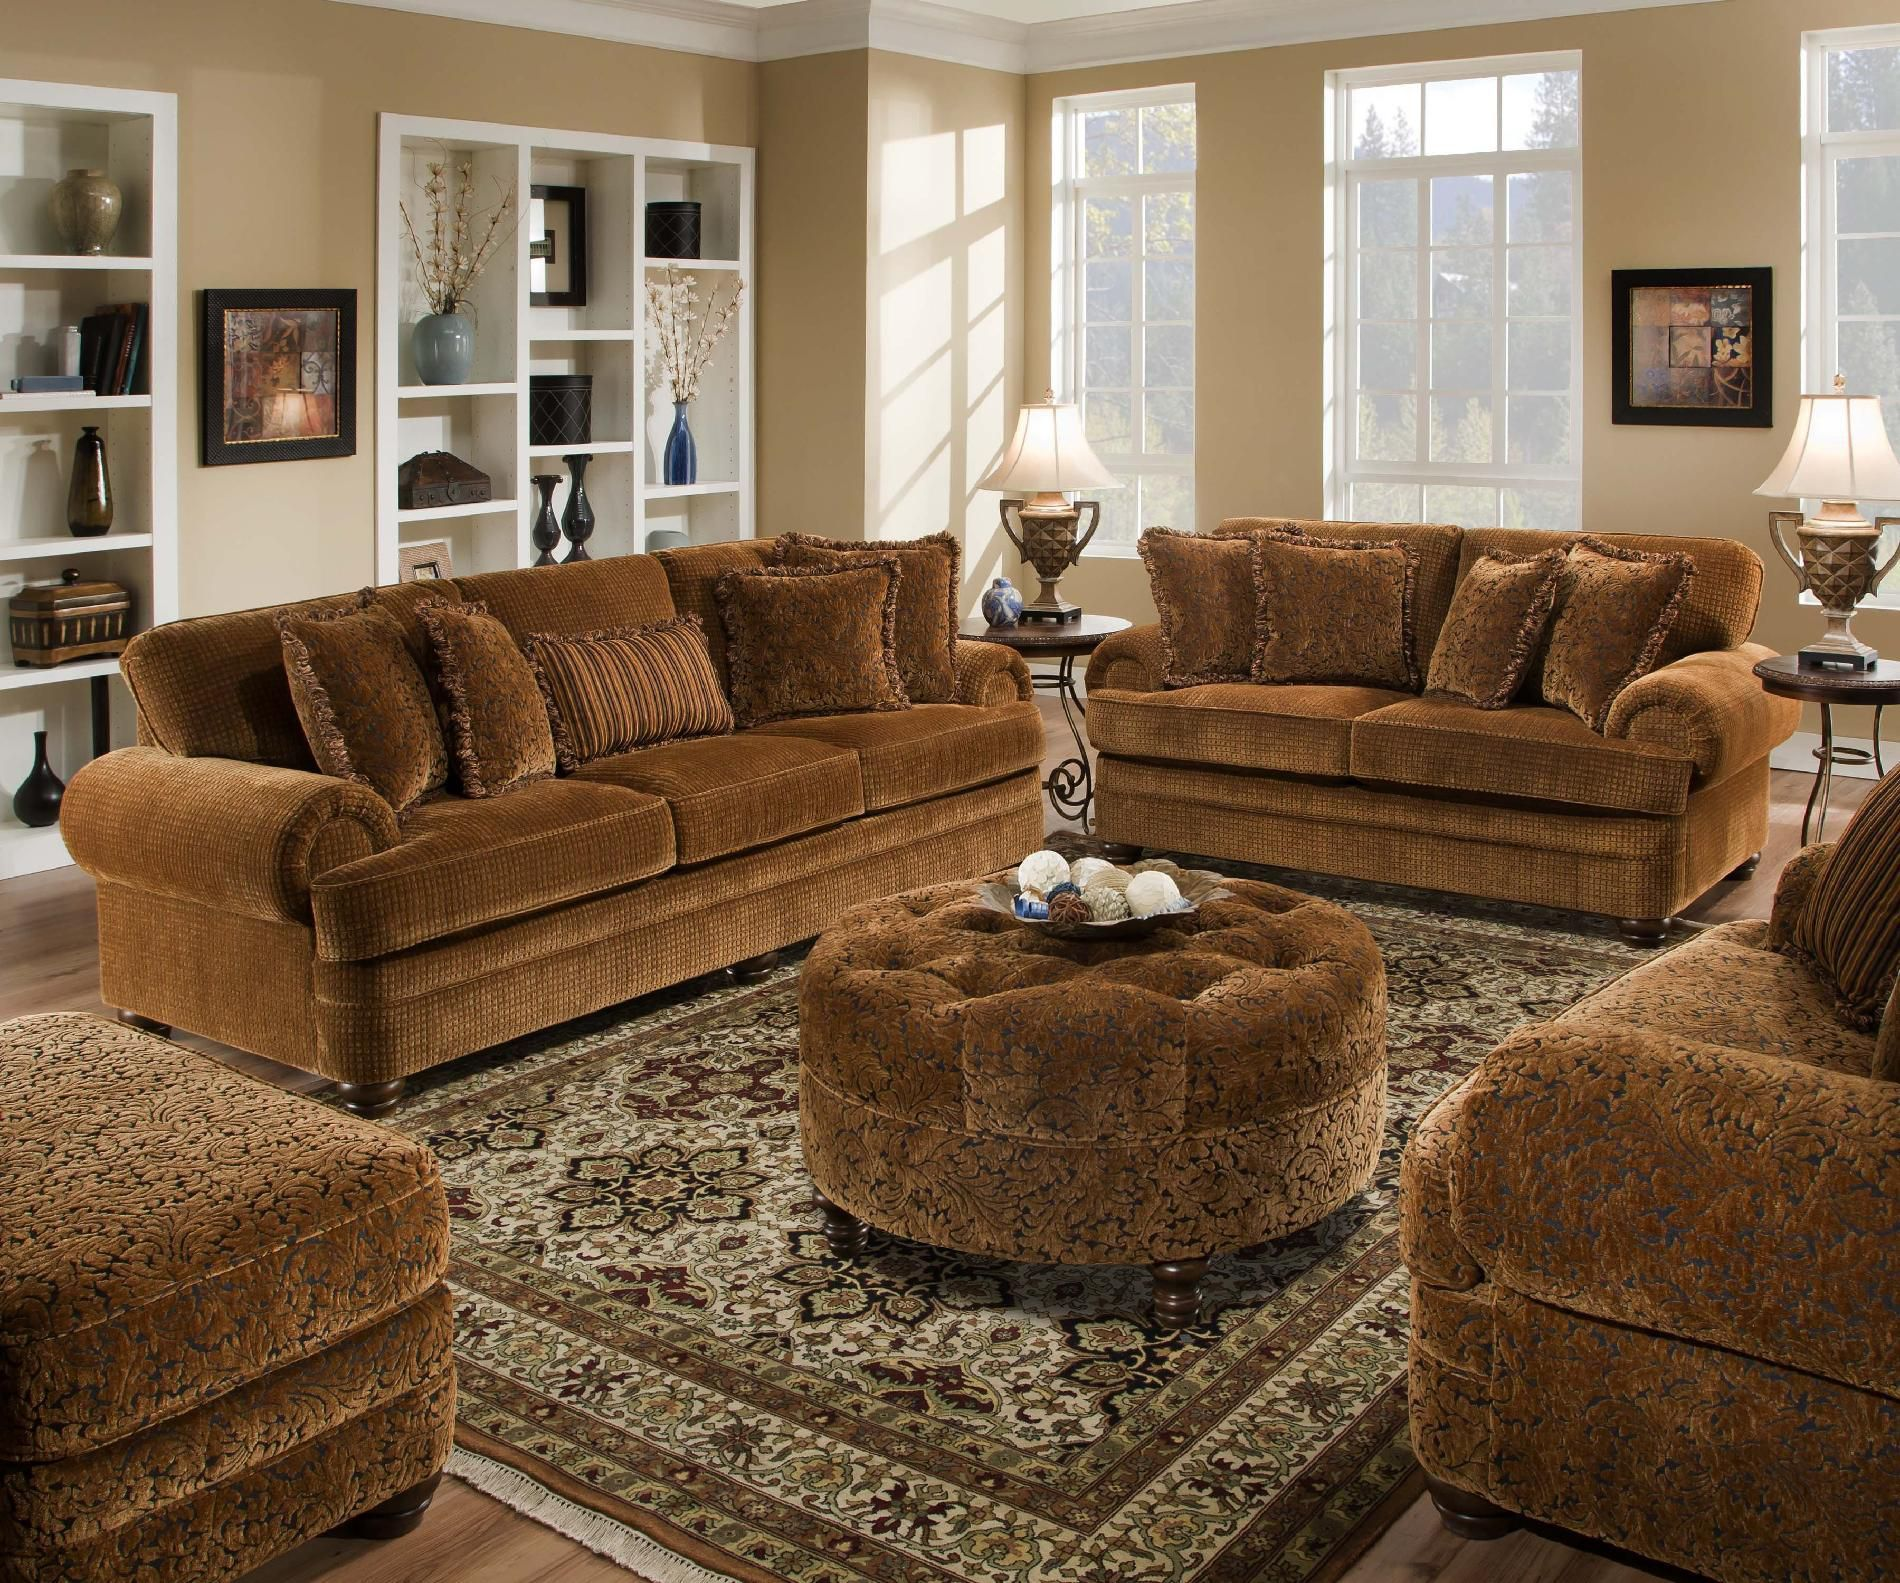 Image Result For Paisley Chenille Sofa Living Room Sets Furniture Furniture Simple Living Room Decor Paisley couch living room furniture